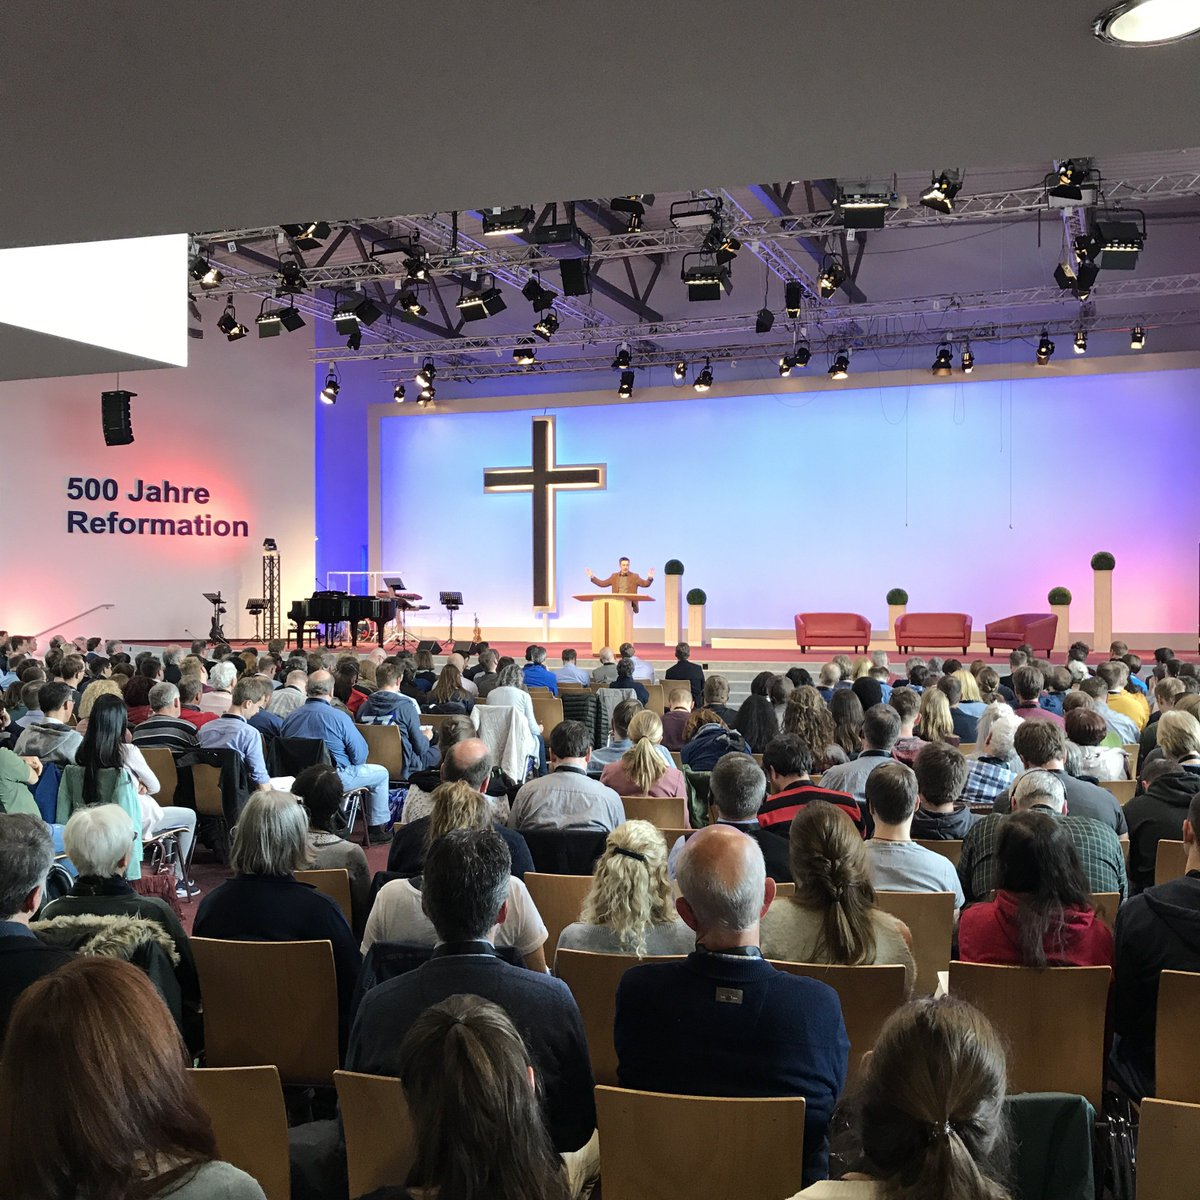 Albert Mohler on Twitter: So thankful to be at #